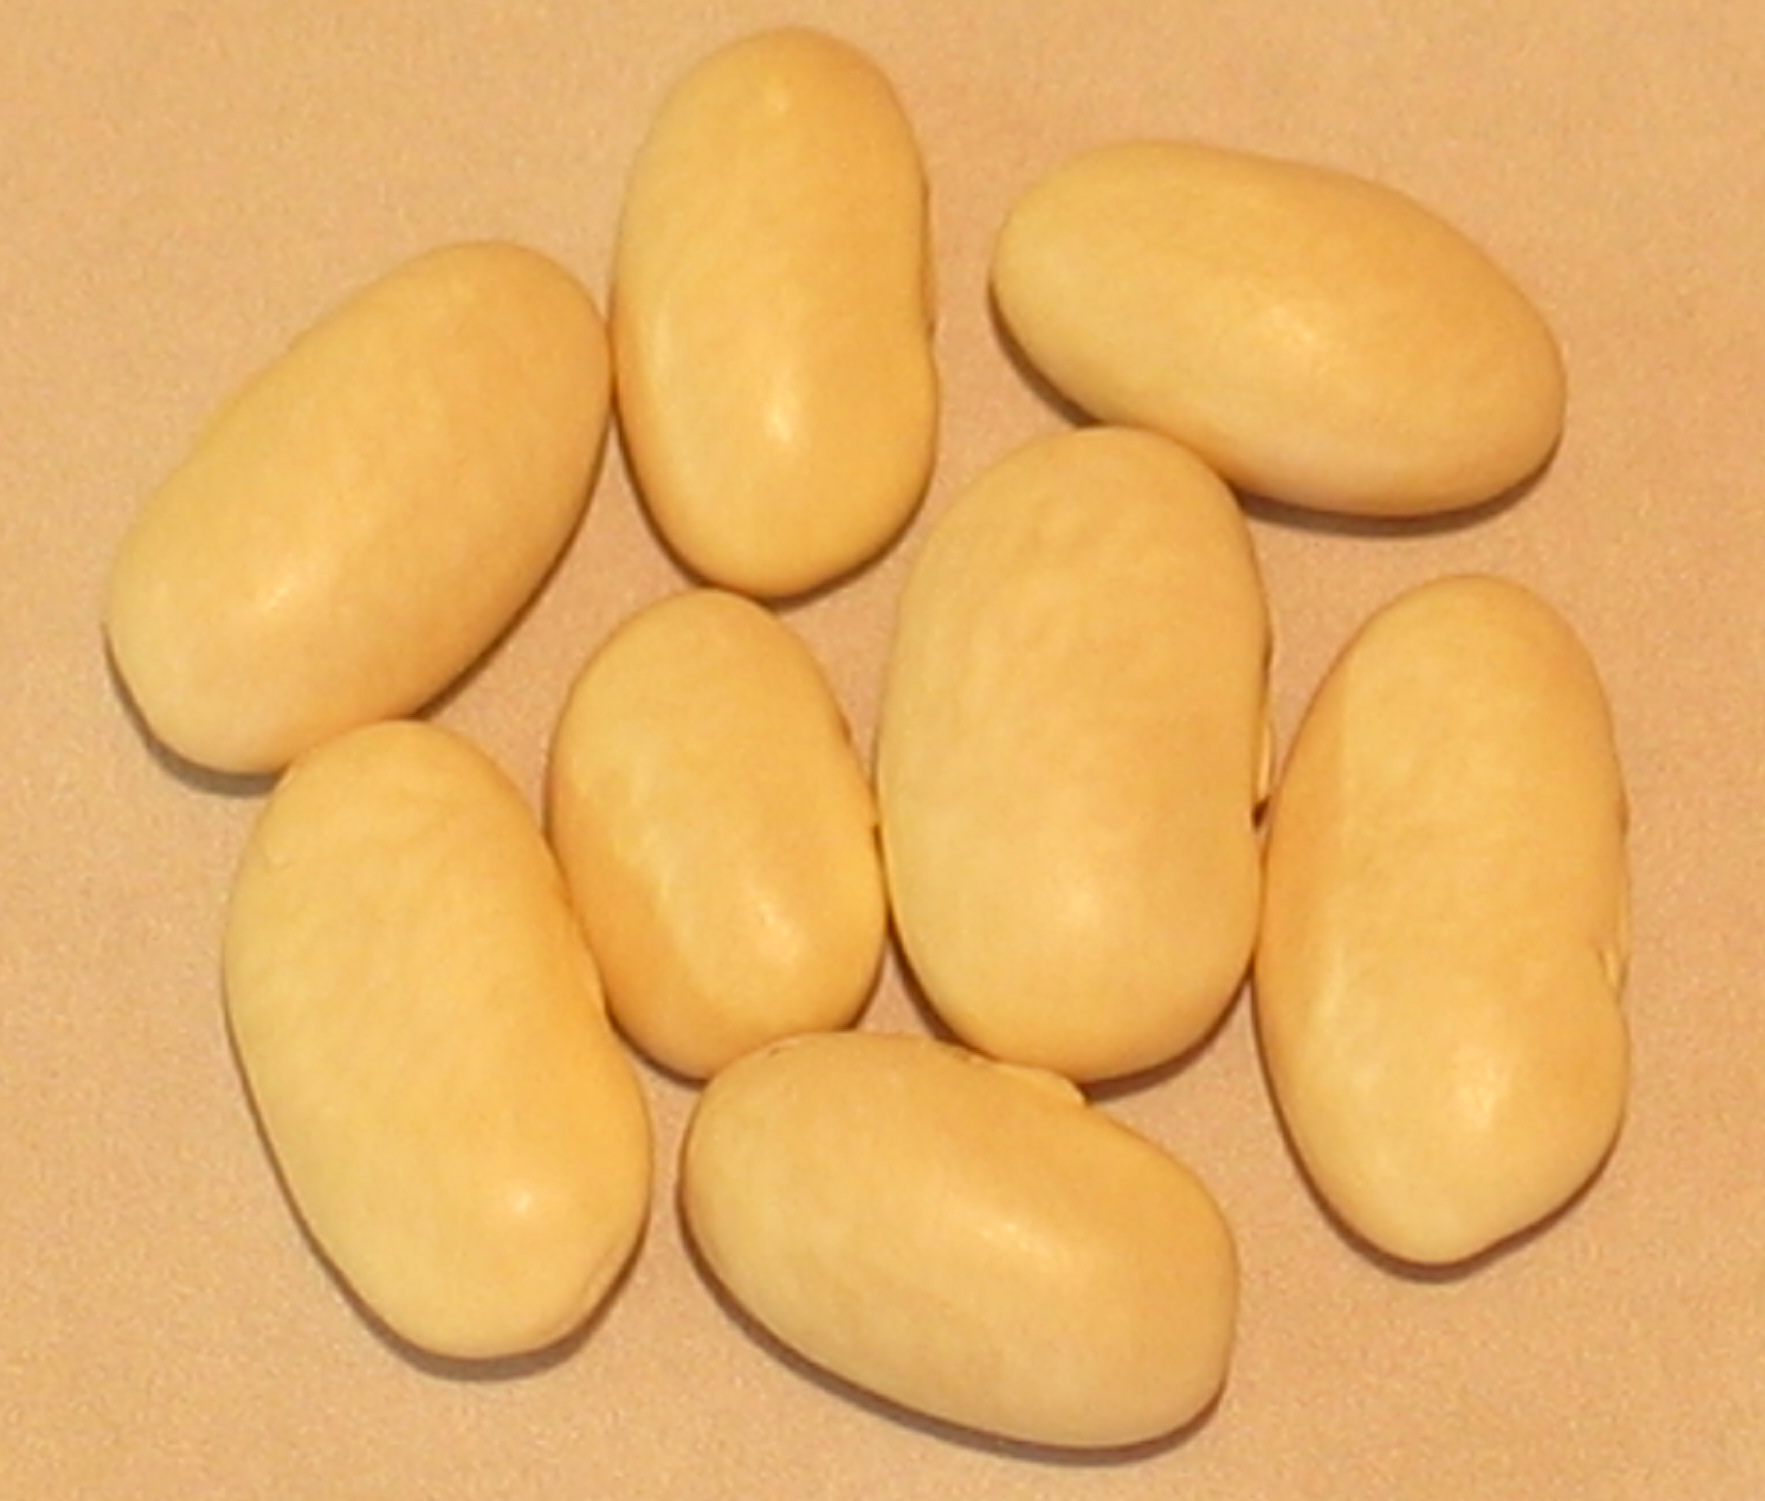 image of Sallee Dunahoo Family's McCaslan beans